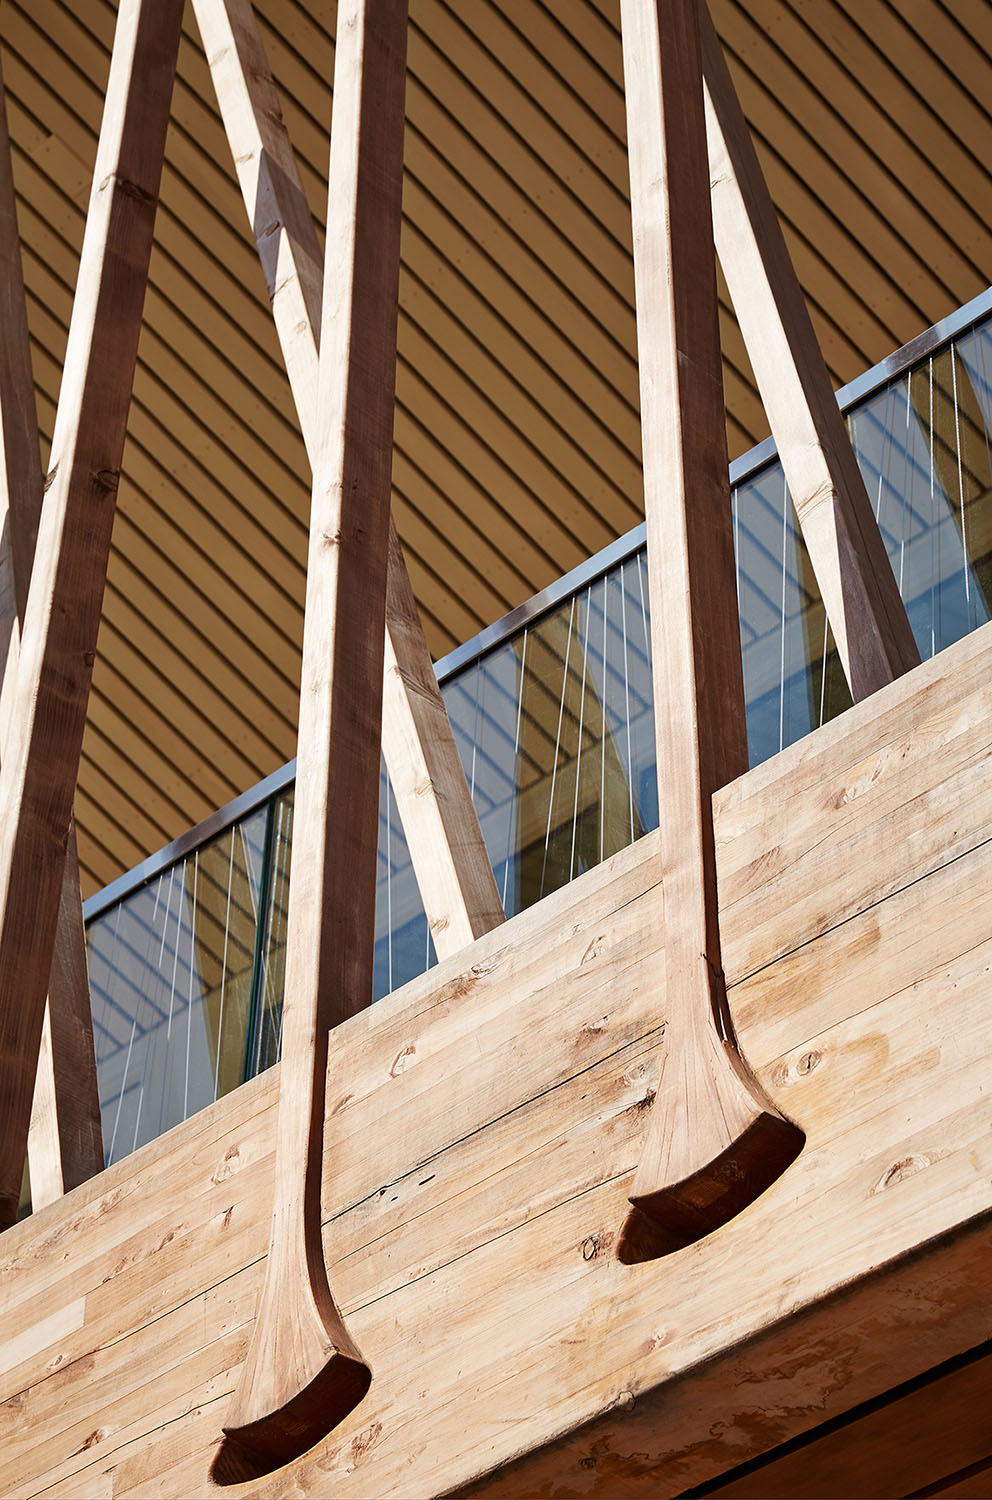 The wood battens are bundled at the glulam beams to minimize the load at mid-span and are offset to distribute the load evenly. The flared detail at the lower cord connects the battens and beams without an